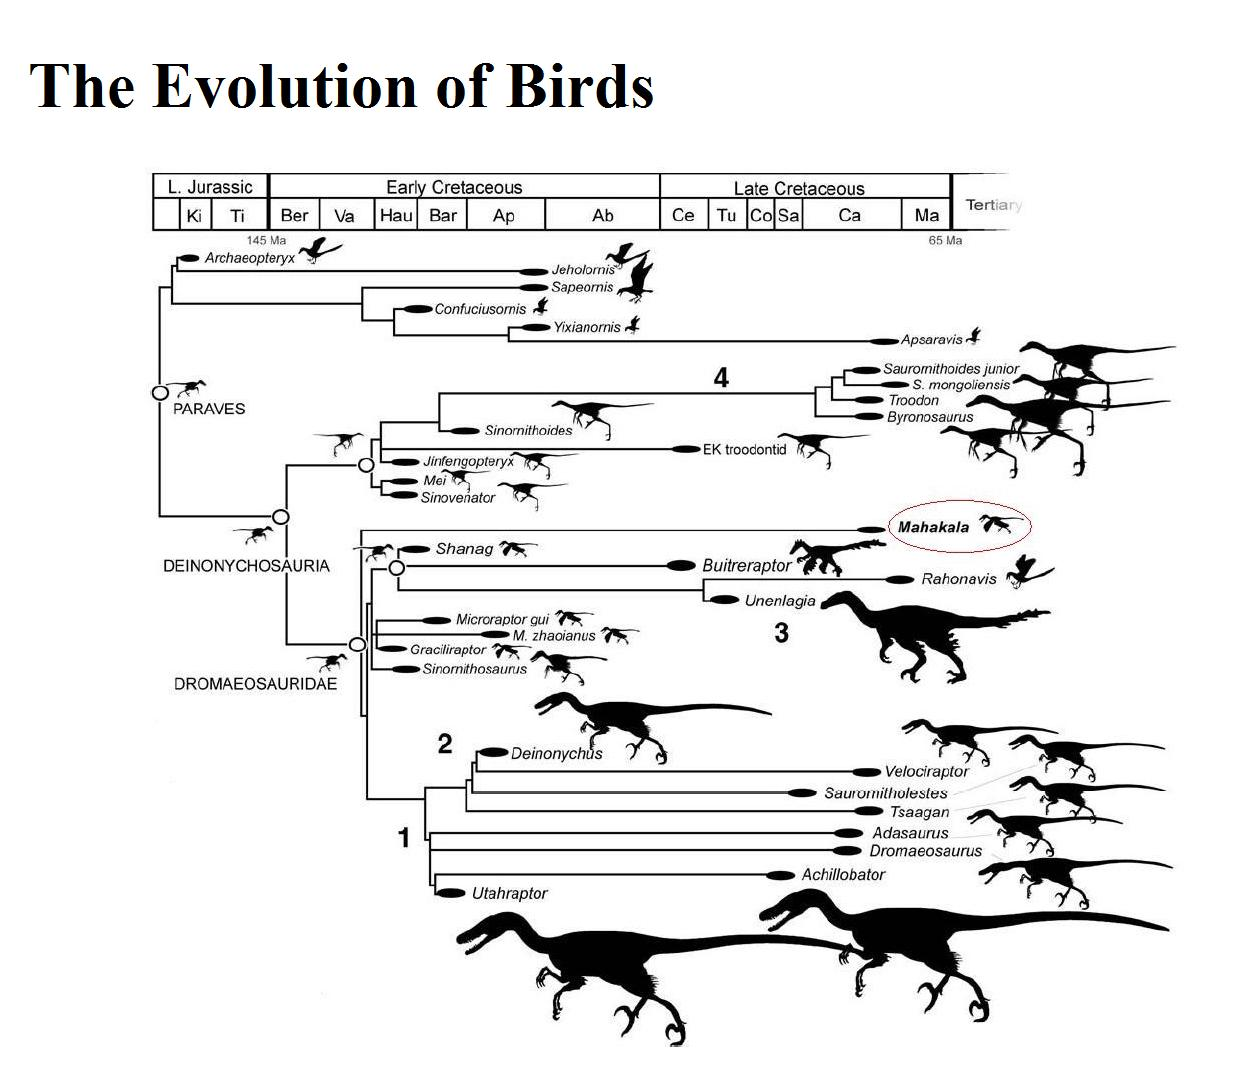 Evolution of the birds chart from L.jurassic to early cretaceous and late creataceous.